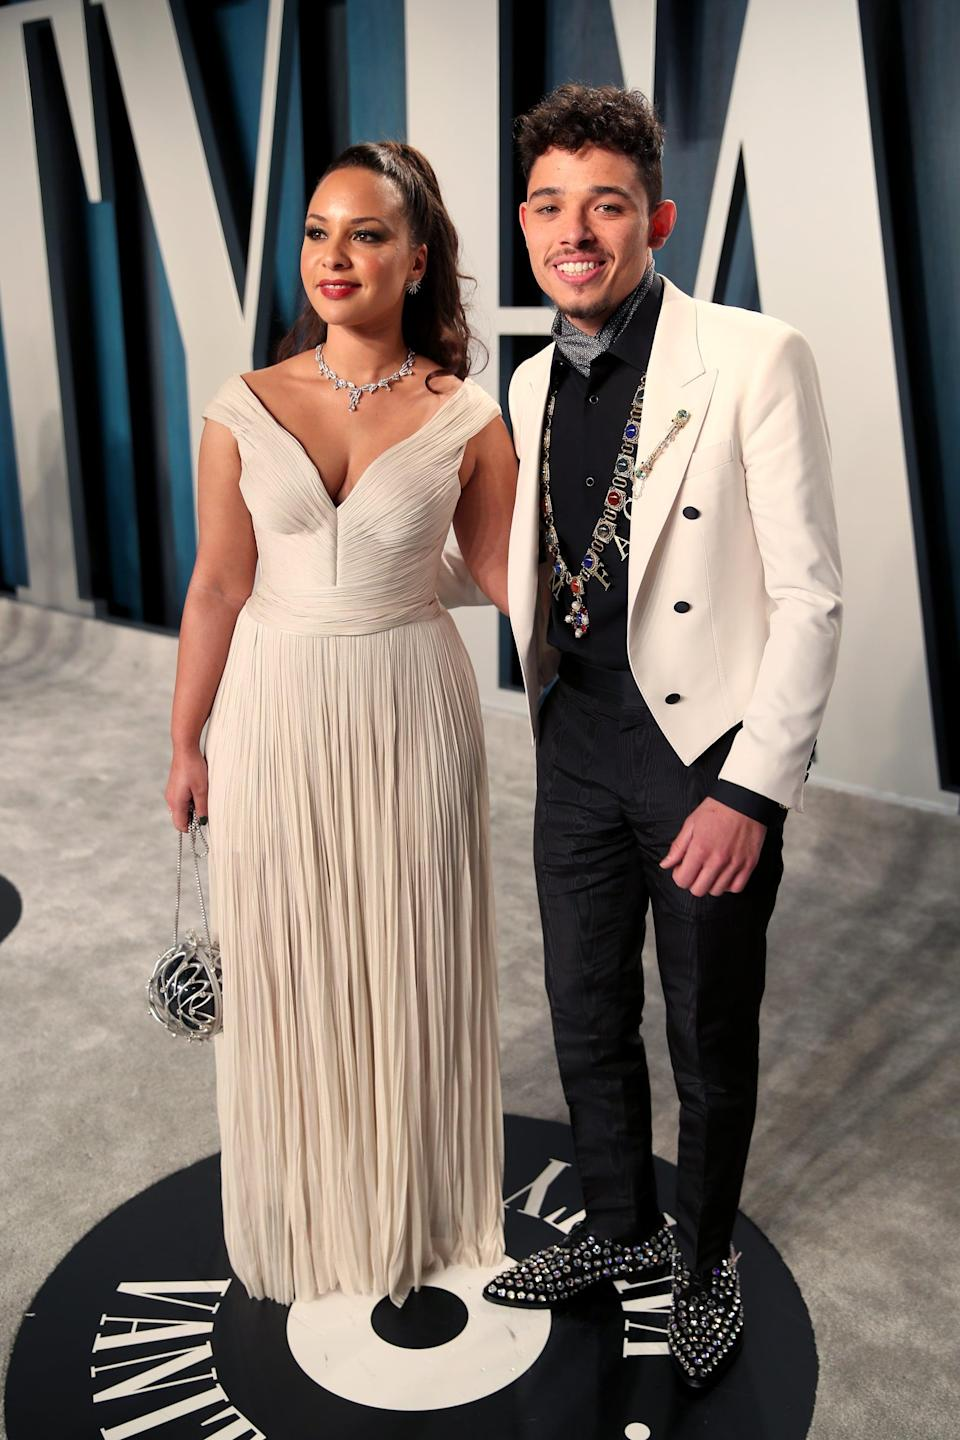 """<p><strong>Hamilton</strong> brought a lot more than stardom to these costars! The couple met when they were both cast in dual roles in the hit musical: her as Peggy Schuyler and Maria Reynolds, him as John Laurens and Philip Hamilton. They got engaged in late 2018, and you can expect to see more of them on the red carpet when things open back up again: Ramos is the star of the upcoming movie musical <strong>In the Heights</strong>, playing the role originated by the show's creator (and his onstage BFF in <strong>Hamilton</strong>) <a class=""""link rapid-noclick-resp"""" href=""""https://www.popsugar.com/Lin-Manuel-Miranda"""" rel=""""nofollow noopener"""" target=""""_blank"""" data-ylk=""""slk:Lin-Manuel Miranda"""">Lin-Manuel Miranda</a>.</p>"""